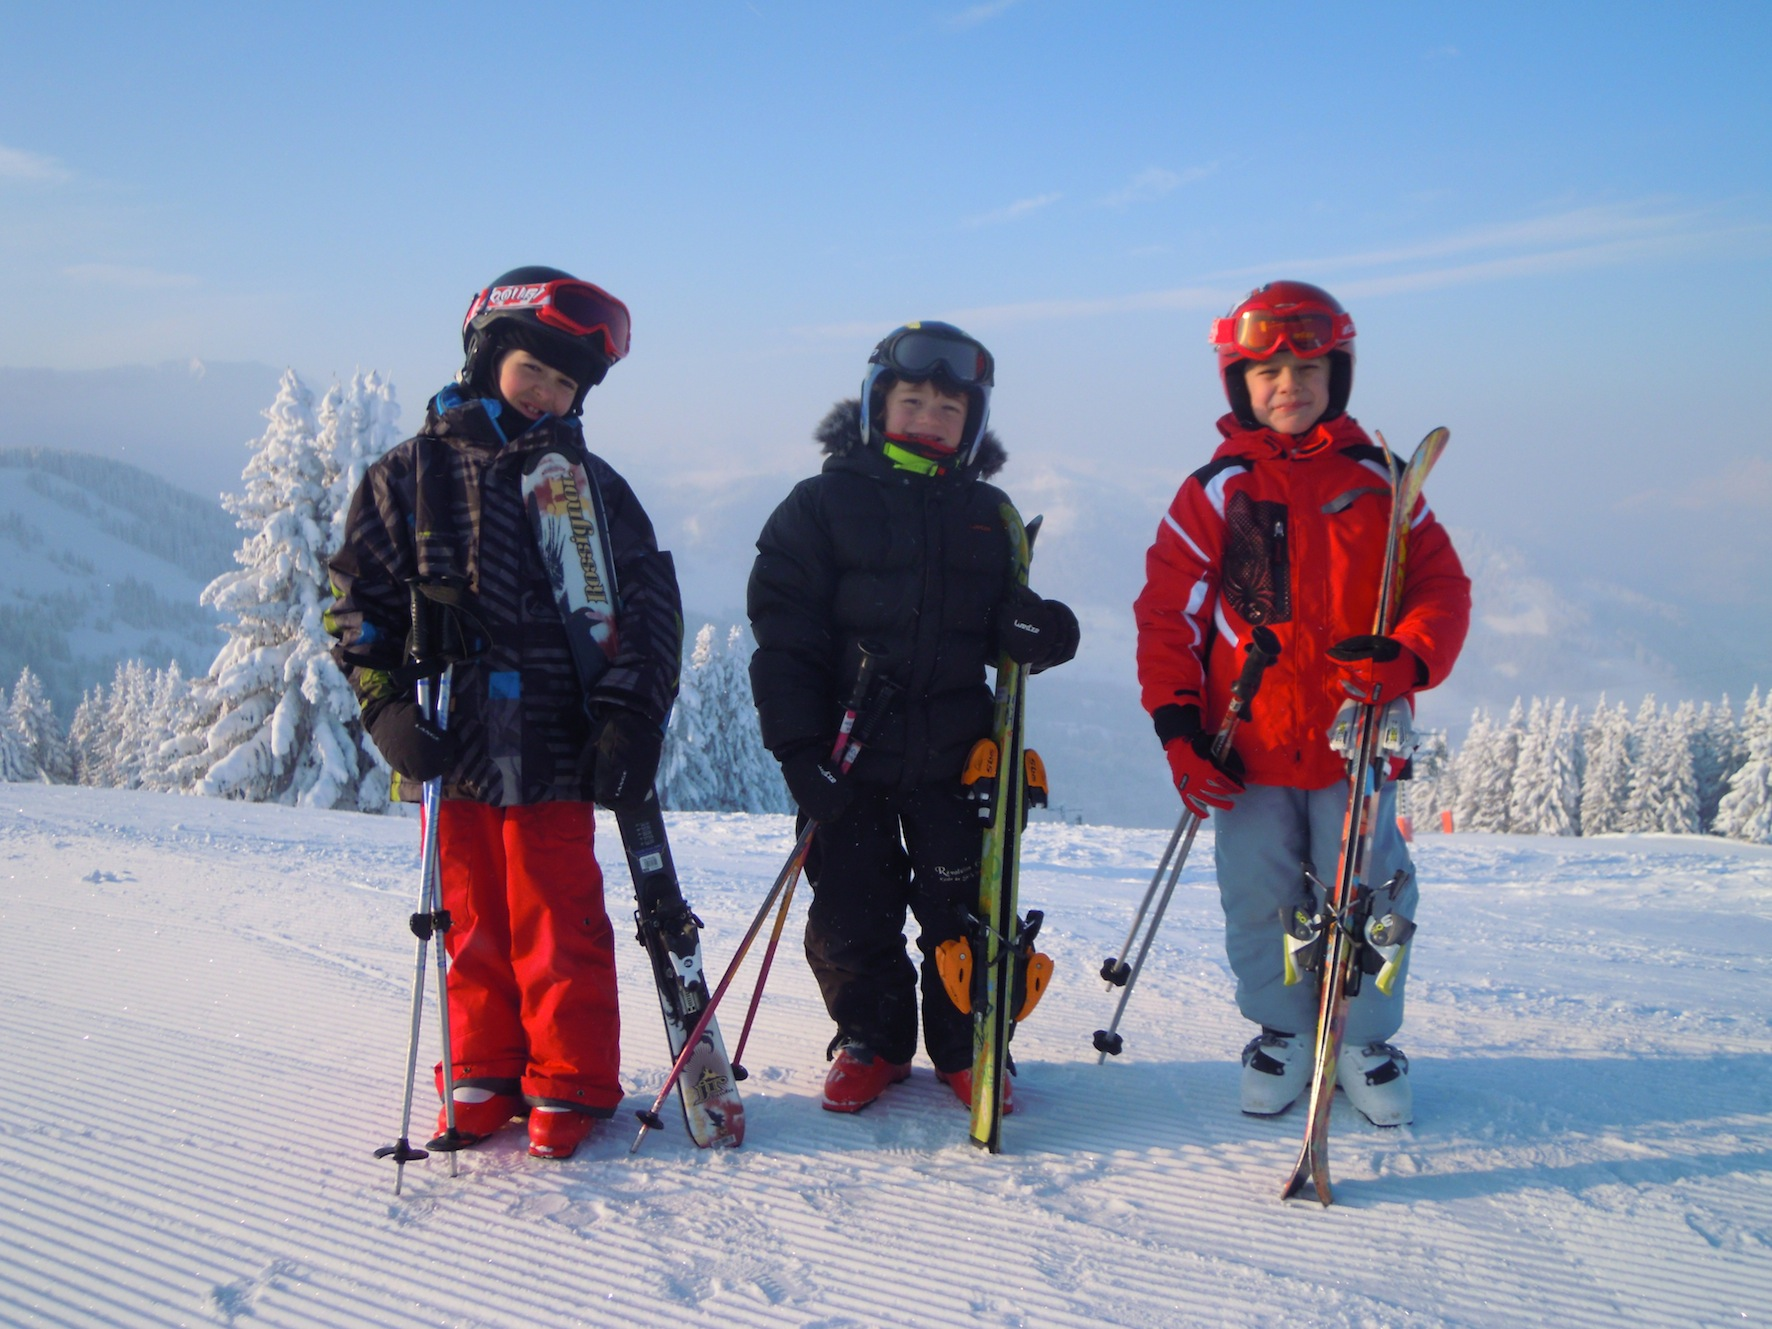 Cours collectifs ski 8 pers max/Group ski lesson 6/12 ans/15h00-17h00